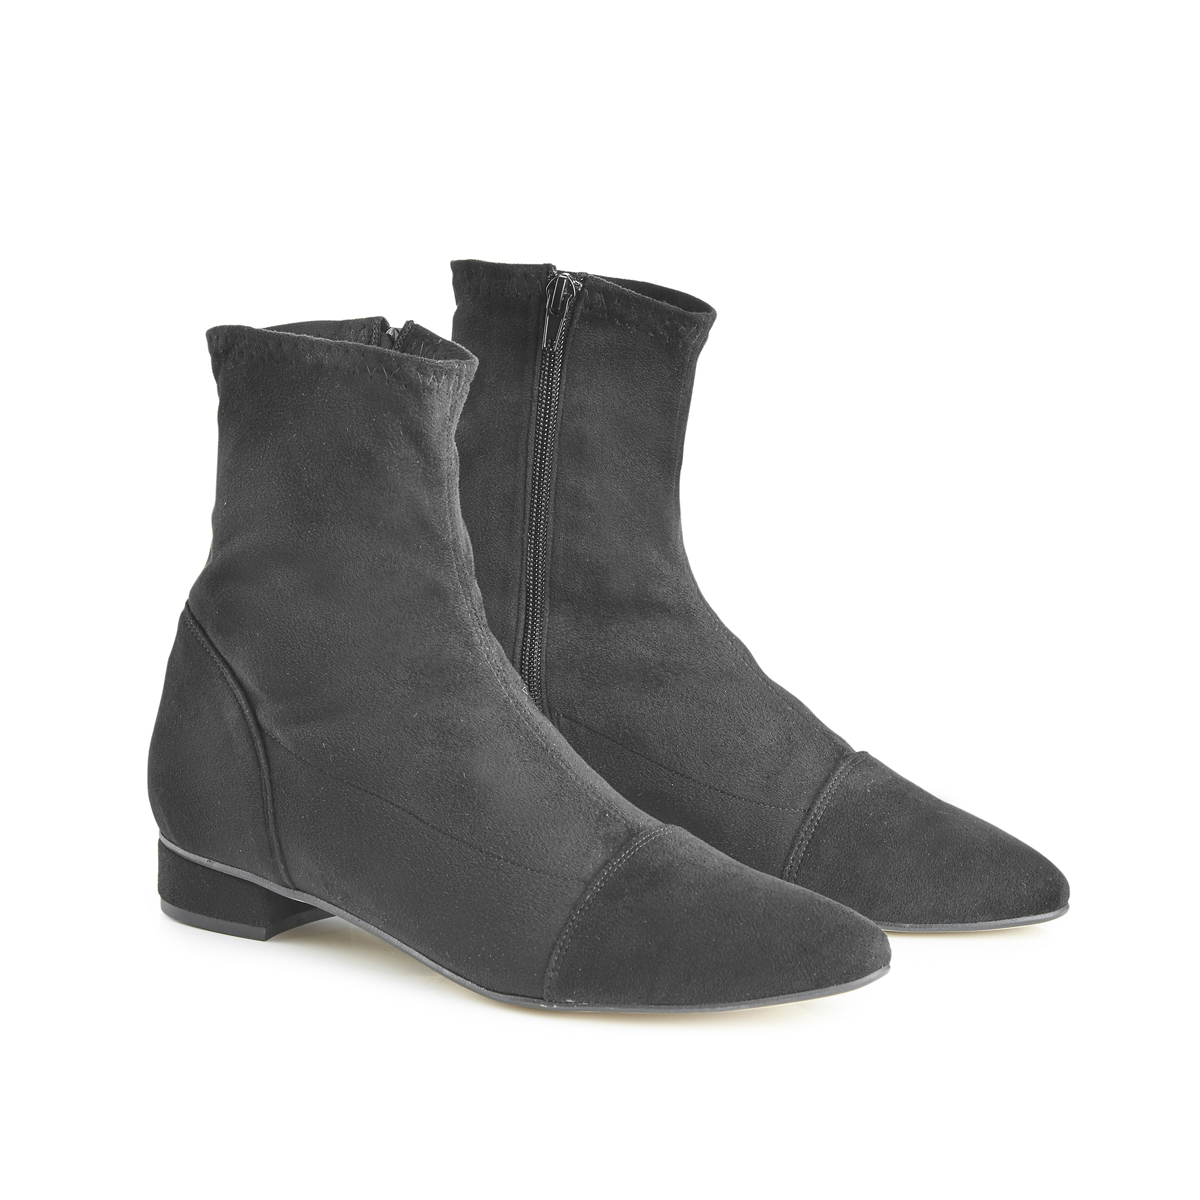 Luna Sock Boots With Pointed Toe - Black